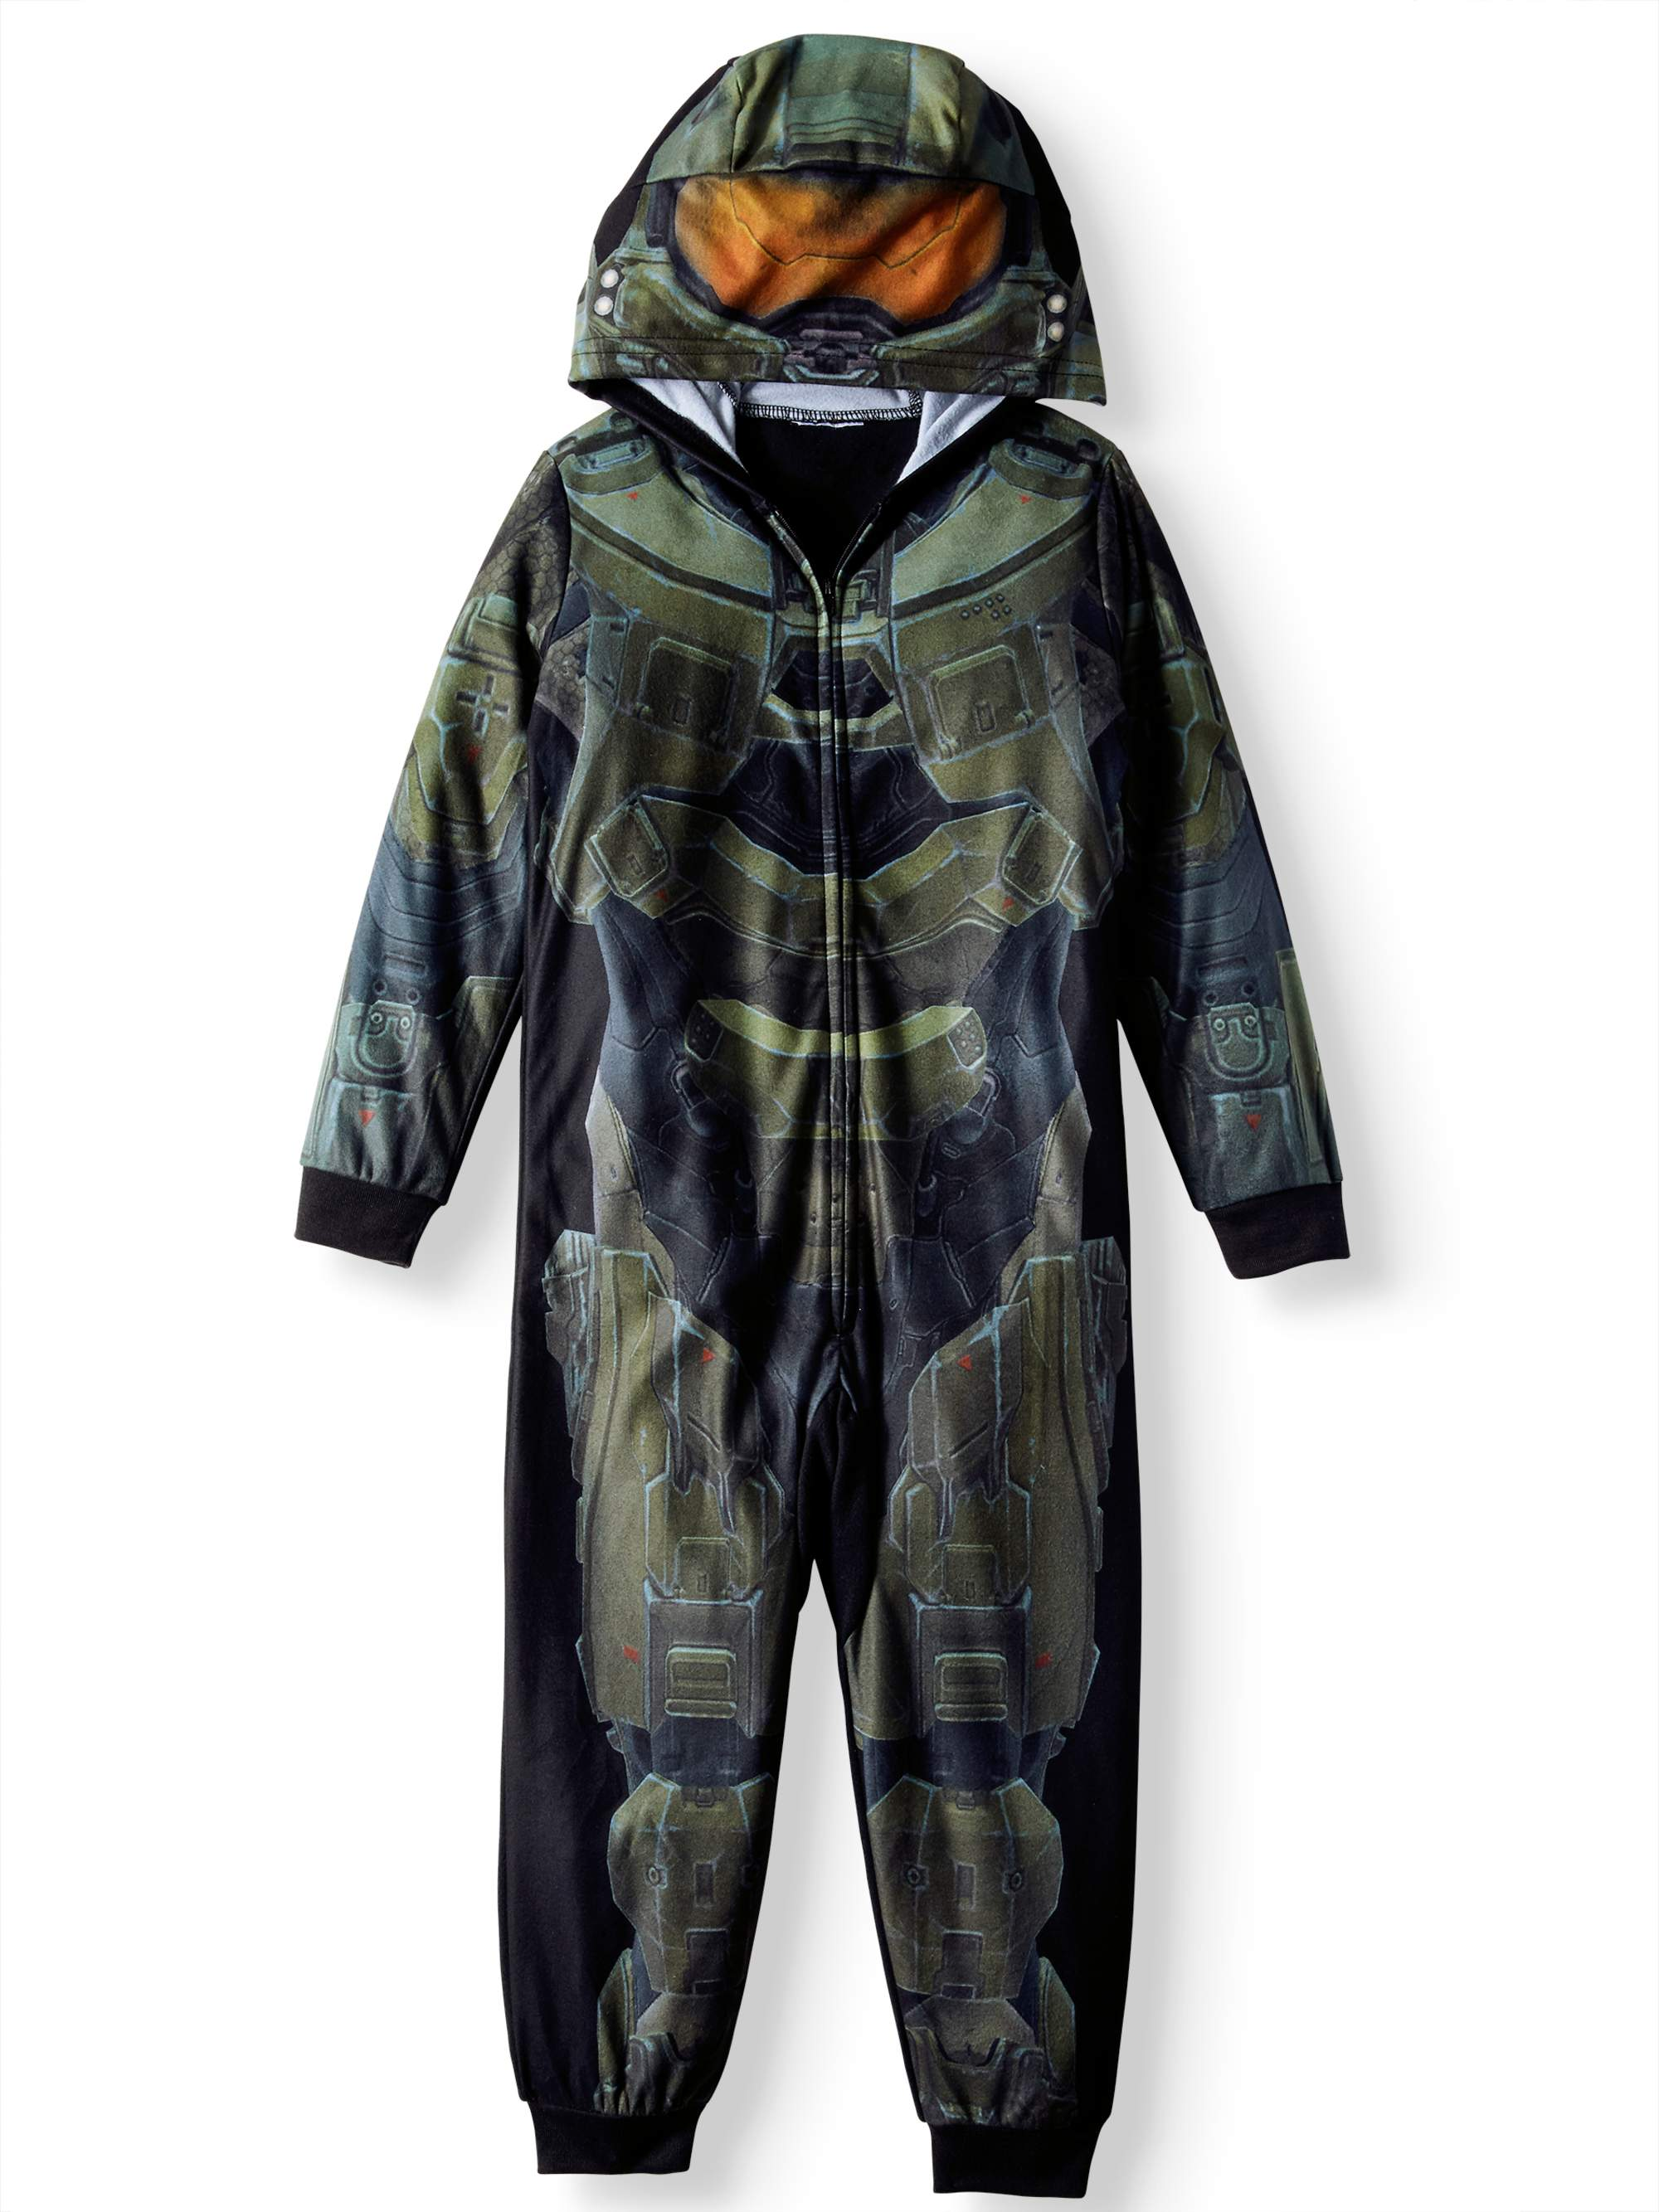 HALO Union Suit Pajama (Big Boy & Little Boy)